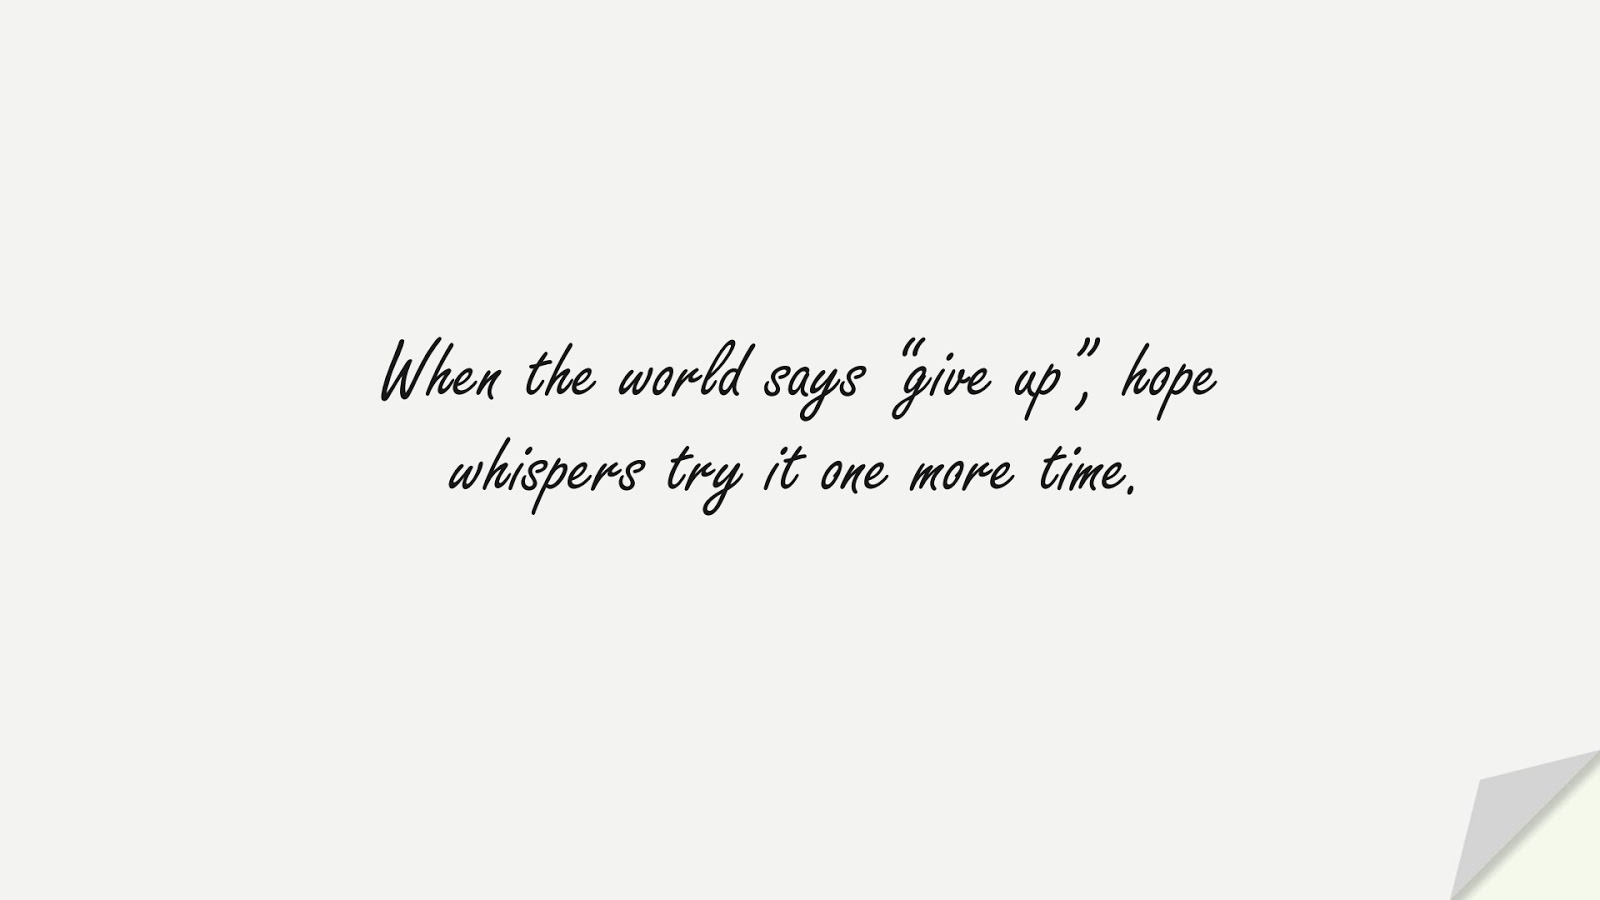 """When the world says """"give up"""", hope whispers try it one more time.FALSE"""